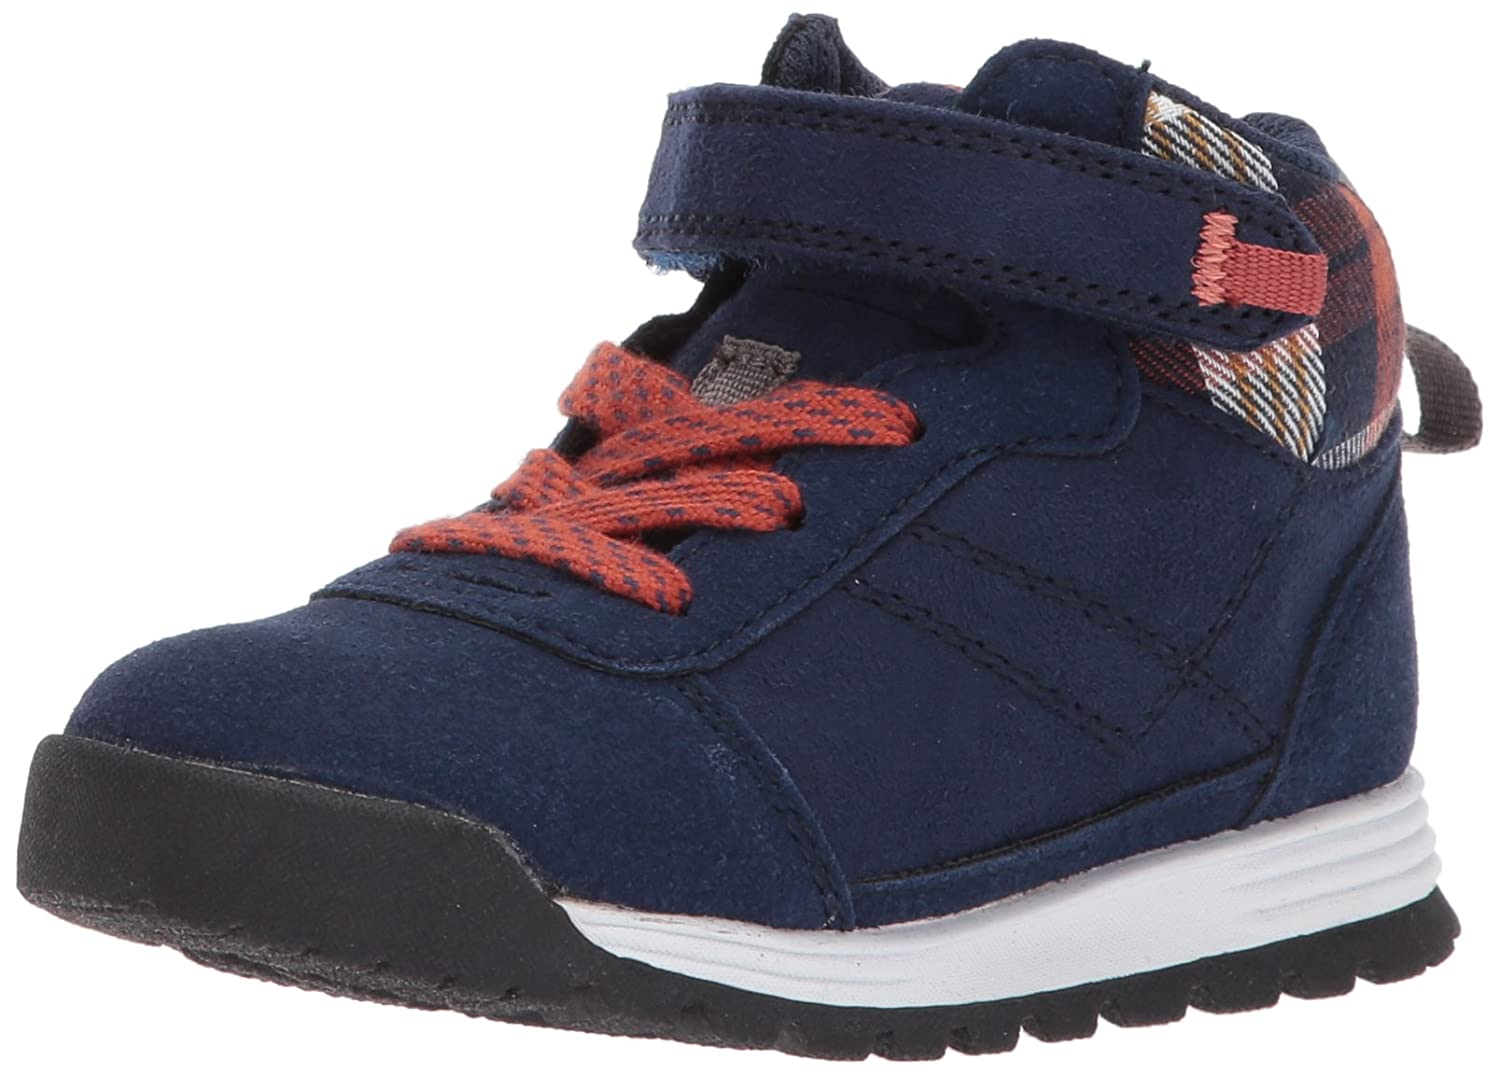 Carter's Kids' Boys' Pike2 Fashion Boot Navy 11 M US Little Kid Carter's PIKE2 - K